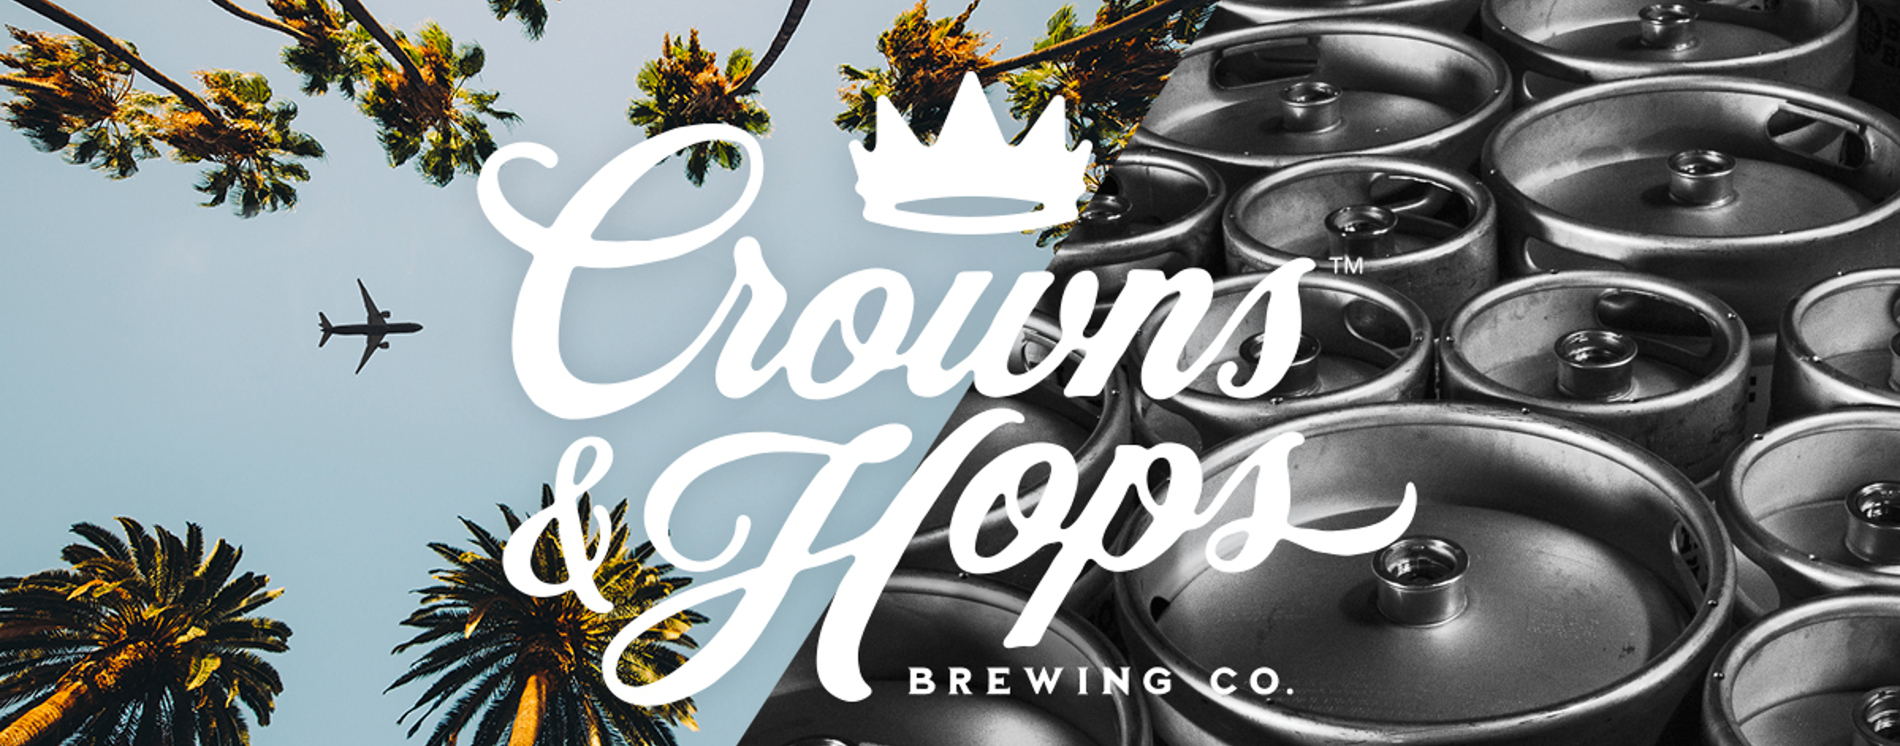 BREWDOG AND CROWNS & HOPS SEND A MESSAGE